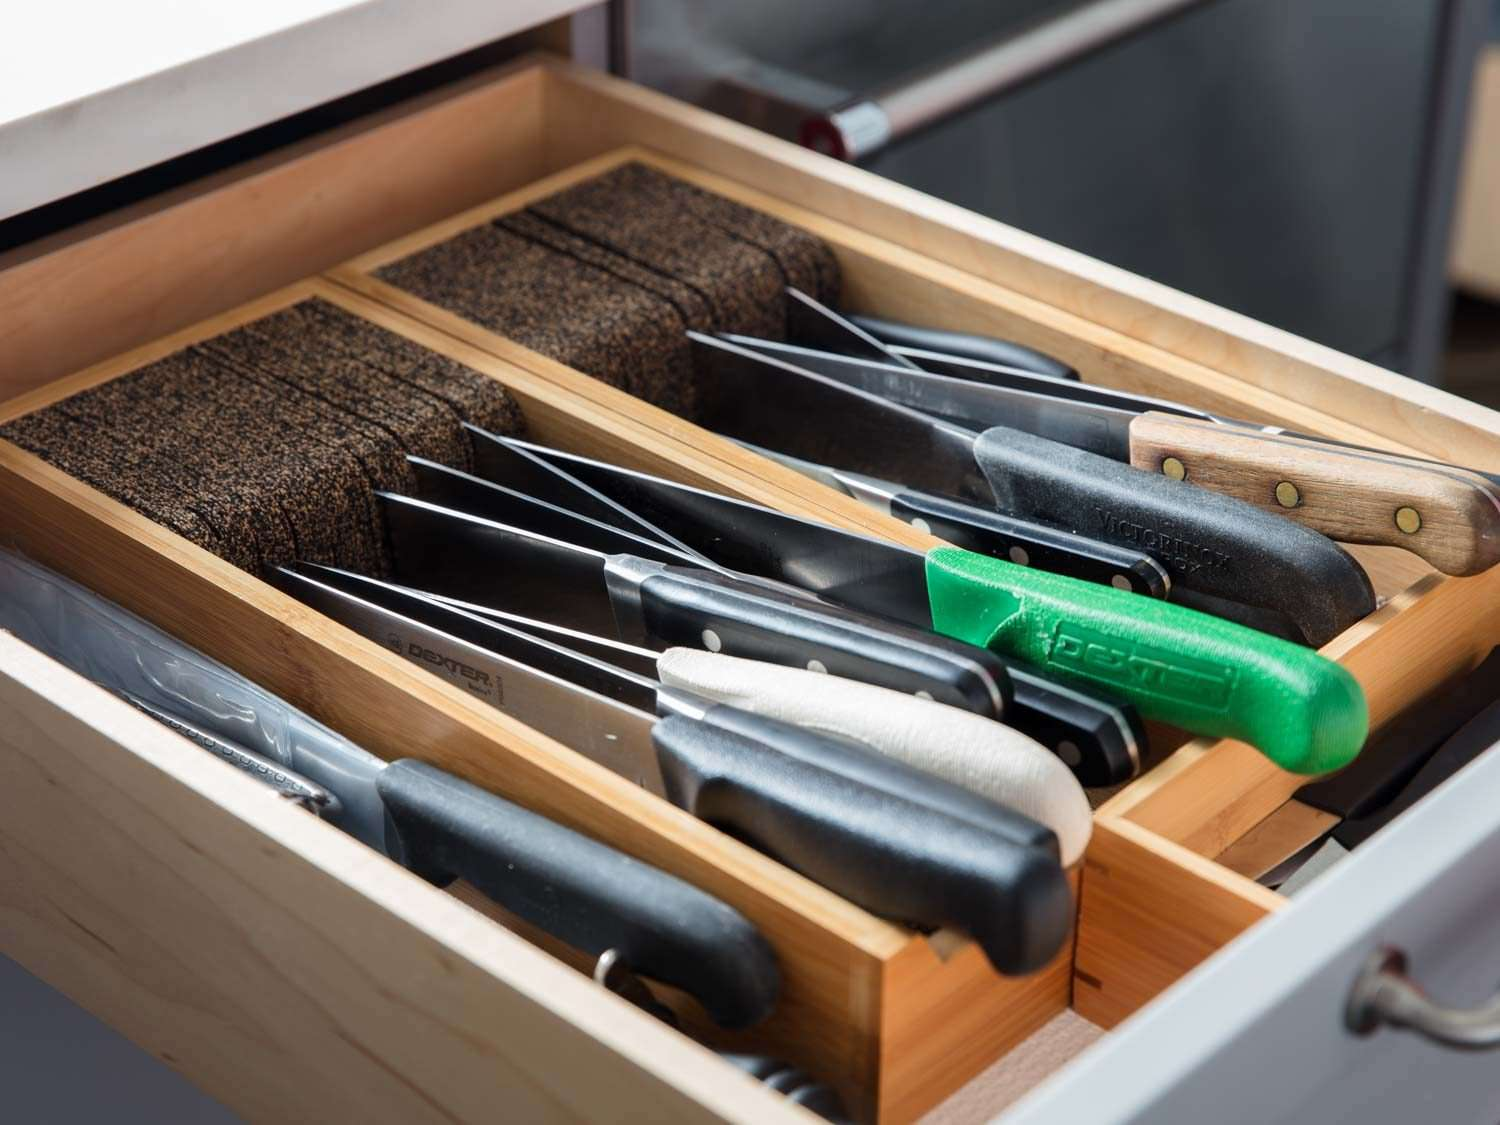 The Best Way to Store Your Knives